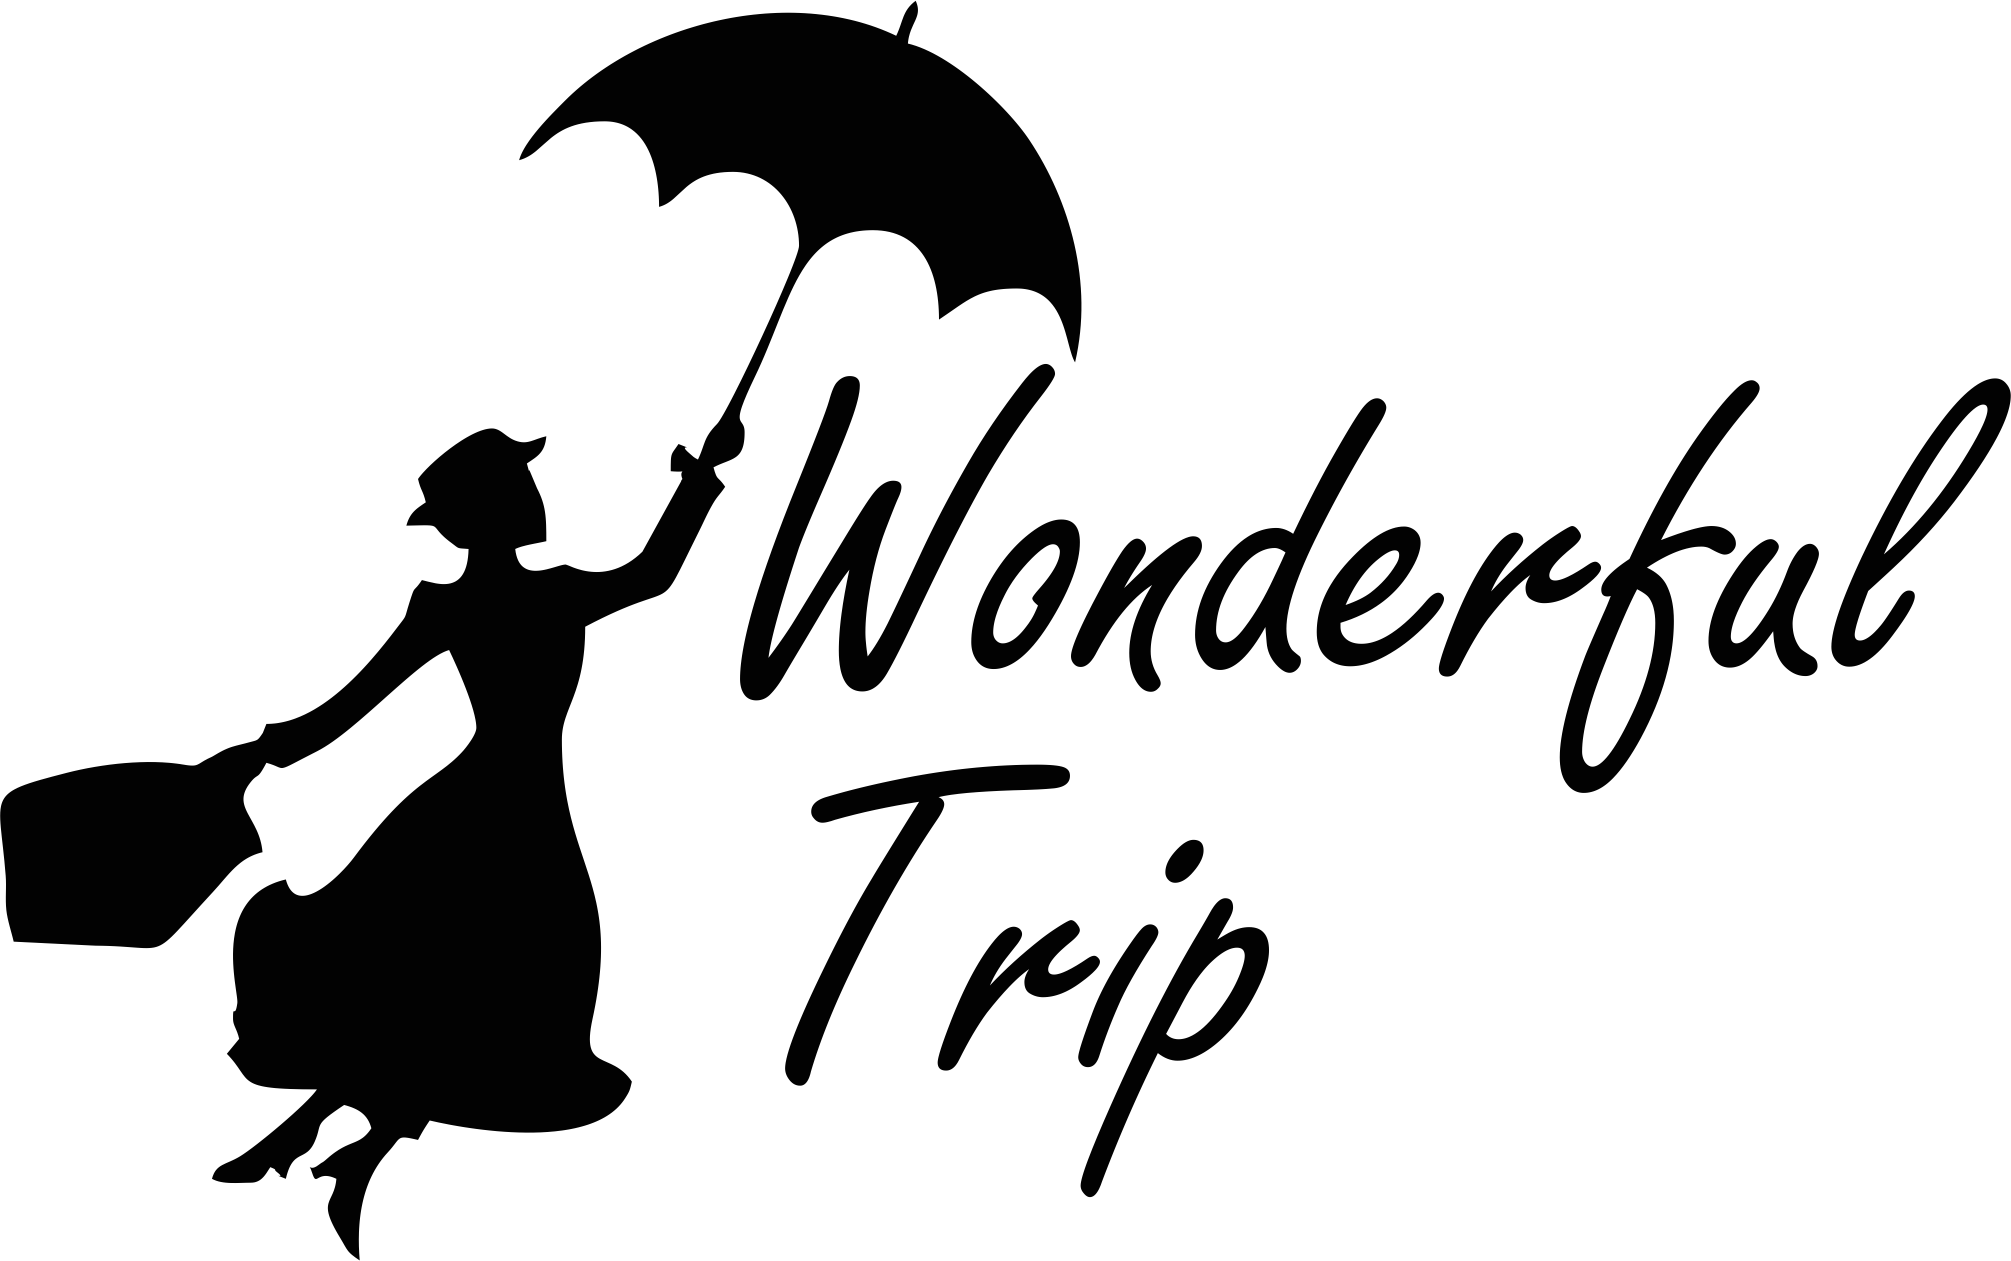 Логотип WonderfulTrip